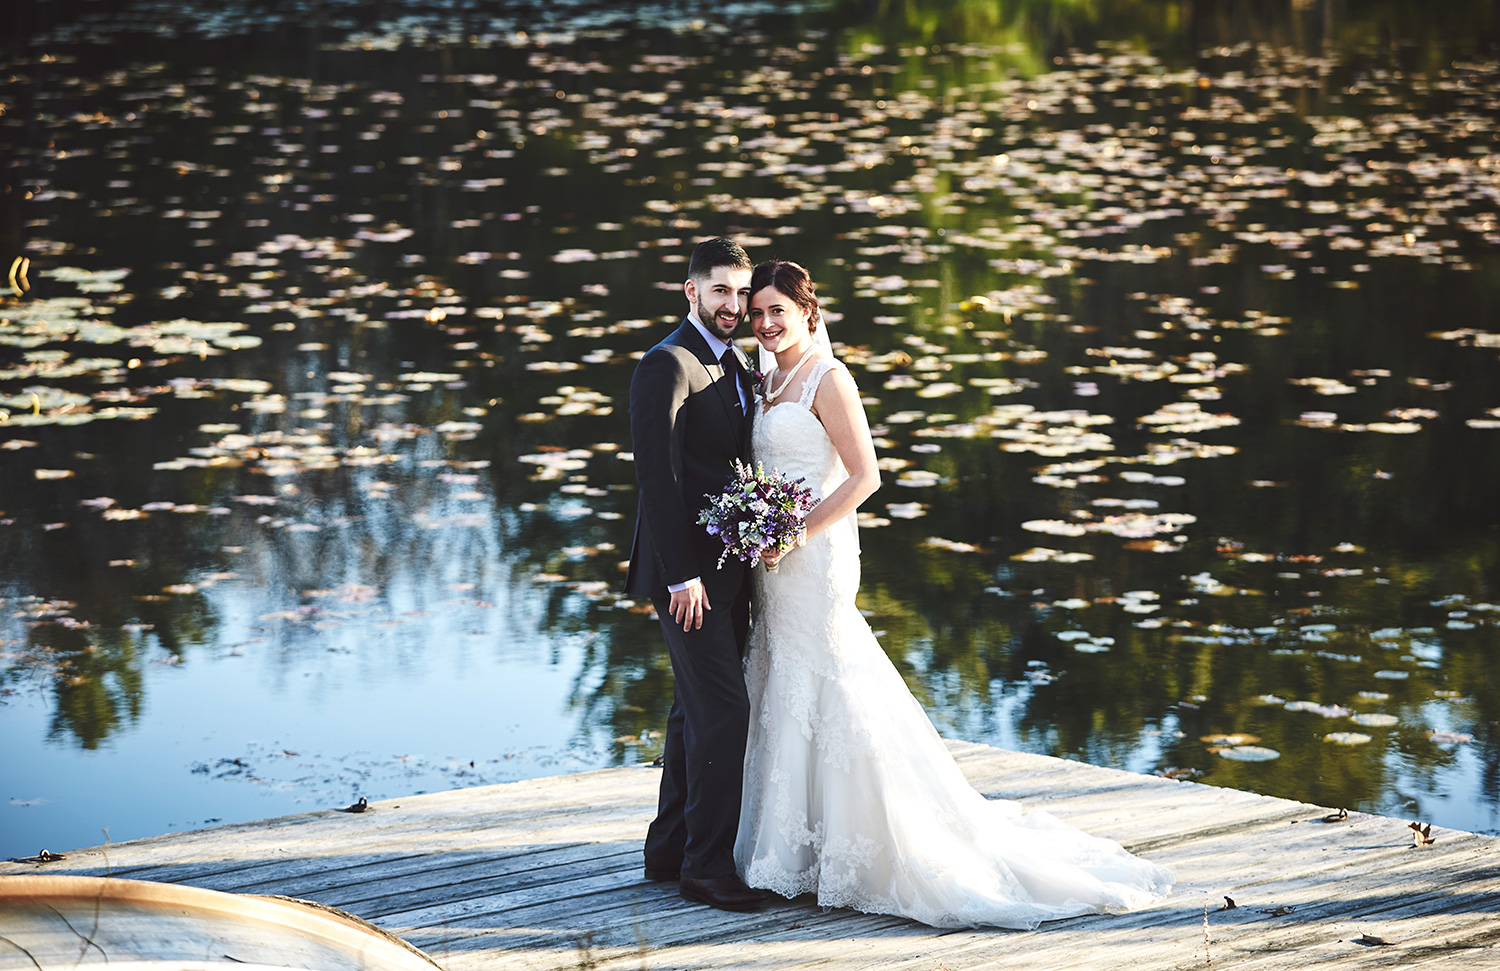 161119_ArrowParkLake&LodgeWedding_By_BriJohnsonWeddings_0087.jpg